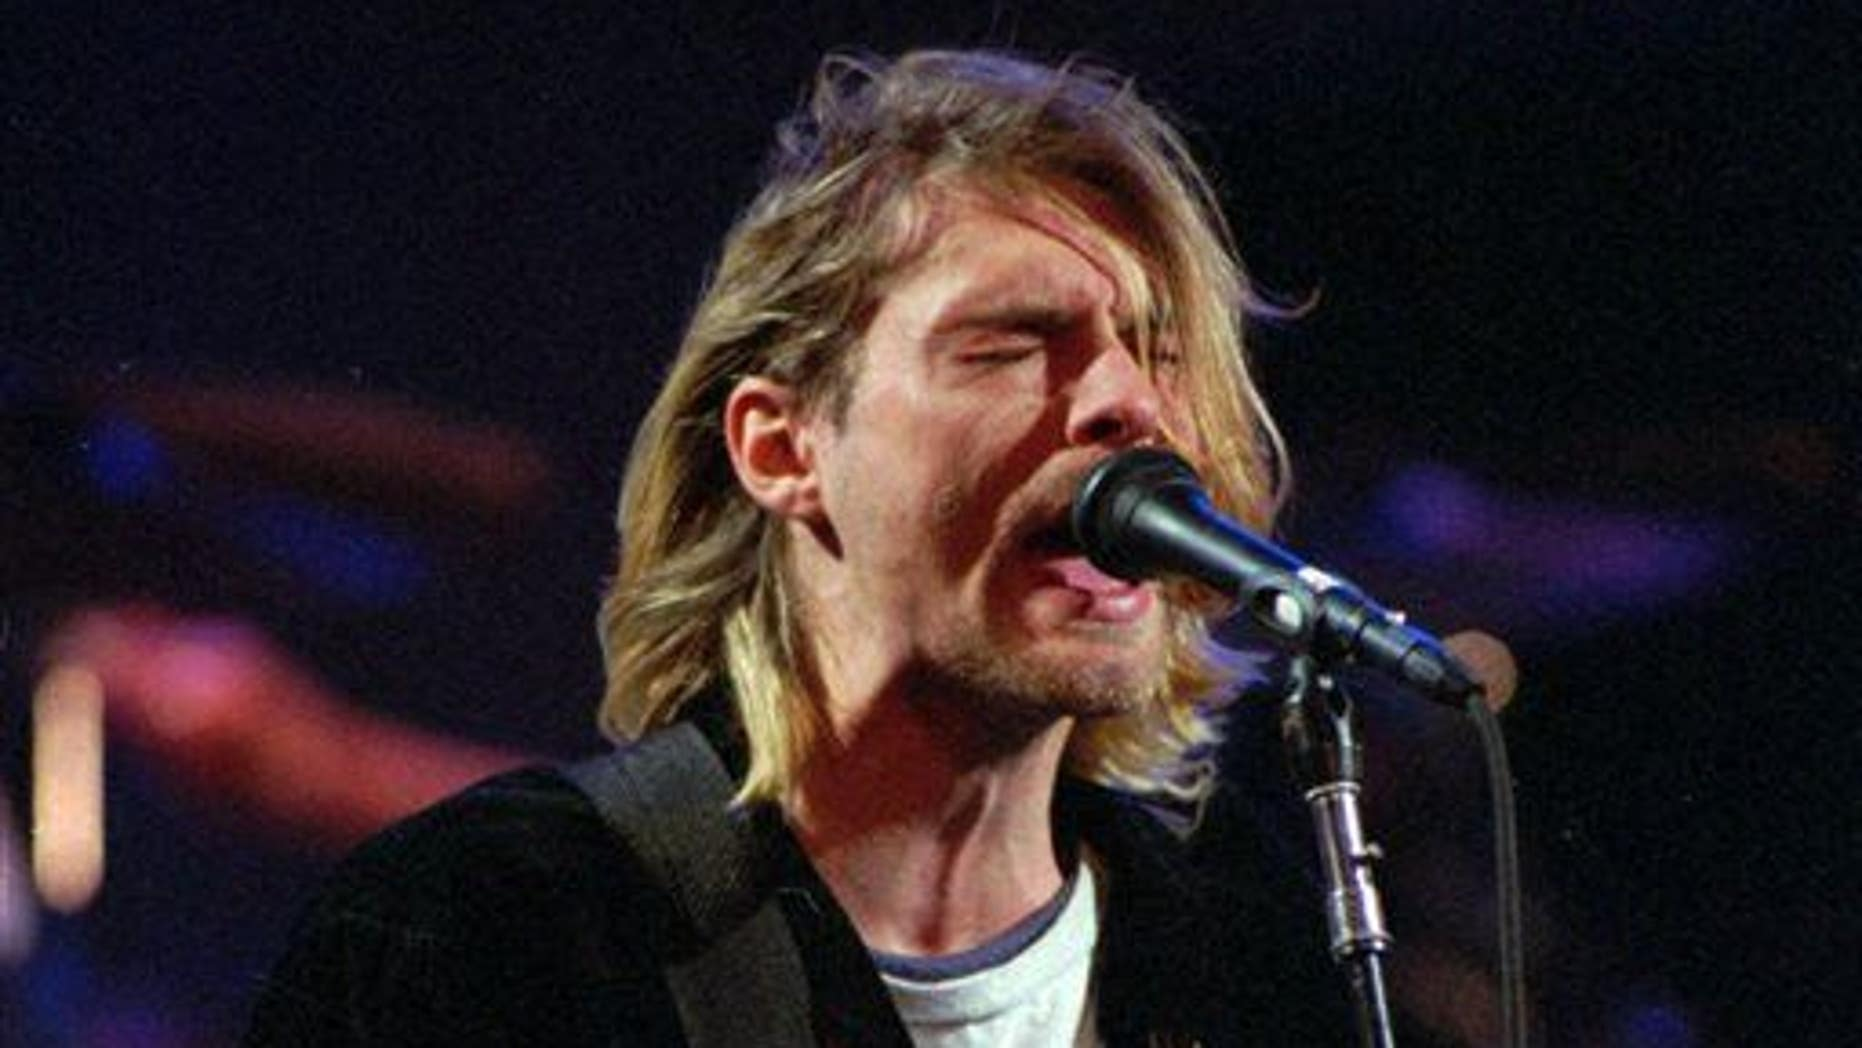 This Dec. 13, 1993 file photo shows Kurt Cobain of the Seattle band Nirvana performing in Seattle, Wash.